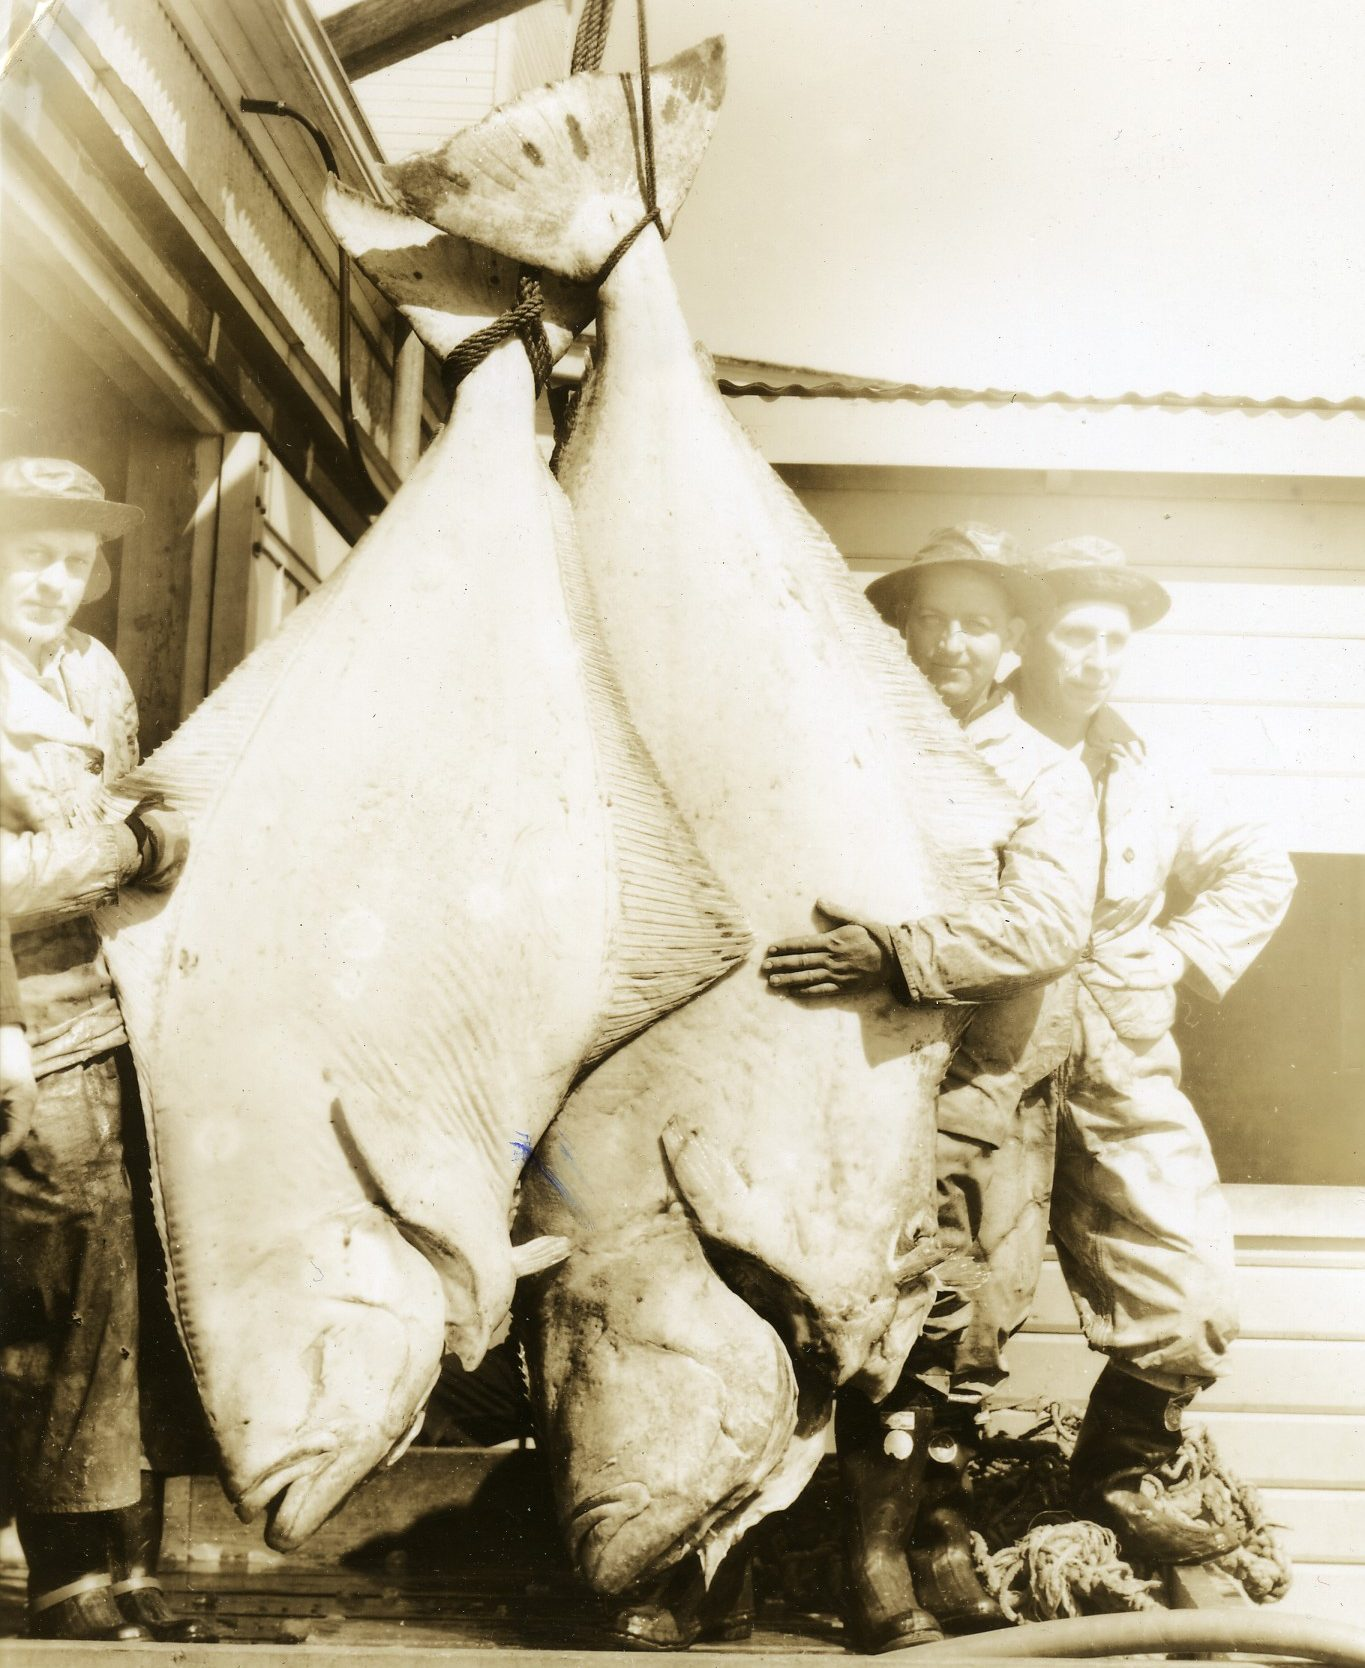 two giant Halibut in the 1930s, Petersburg, Alaska - Flickr CC BY 2.0